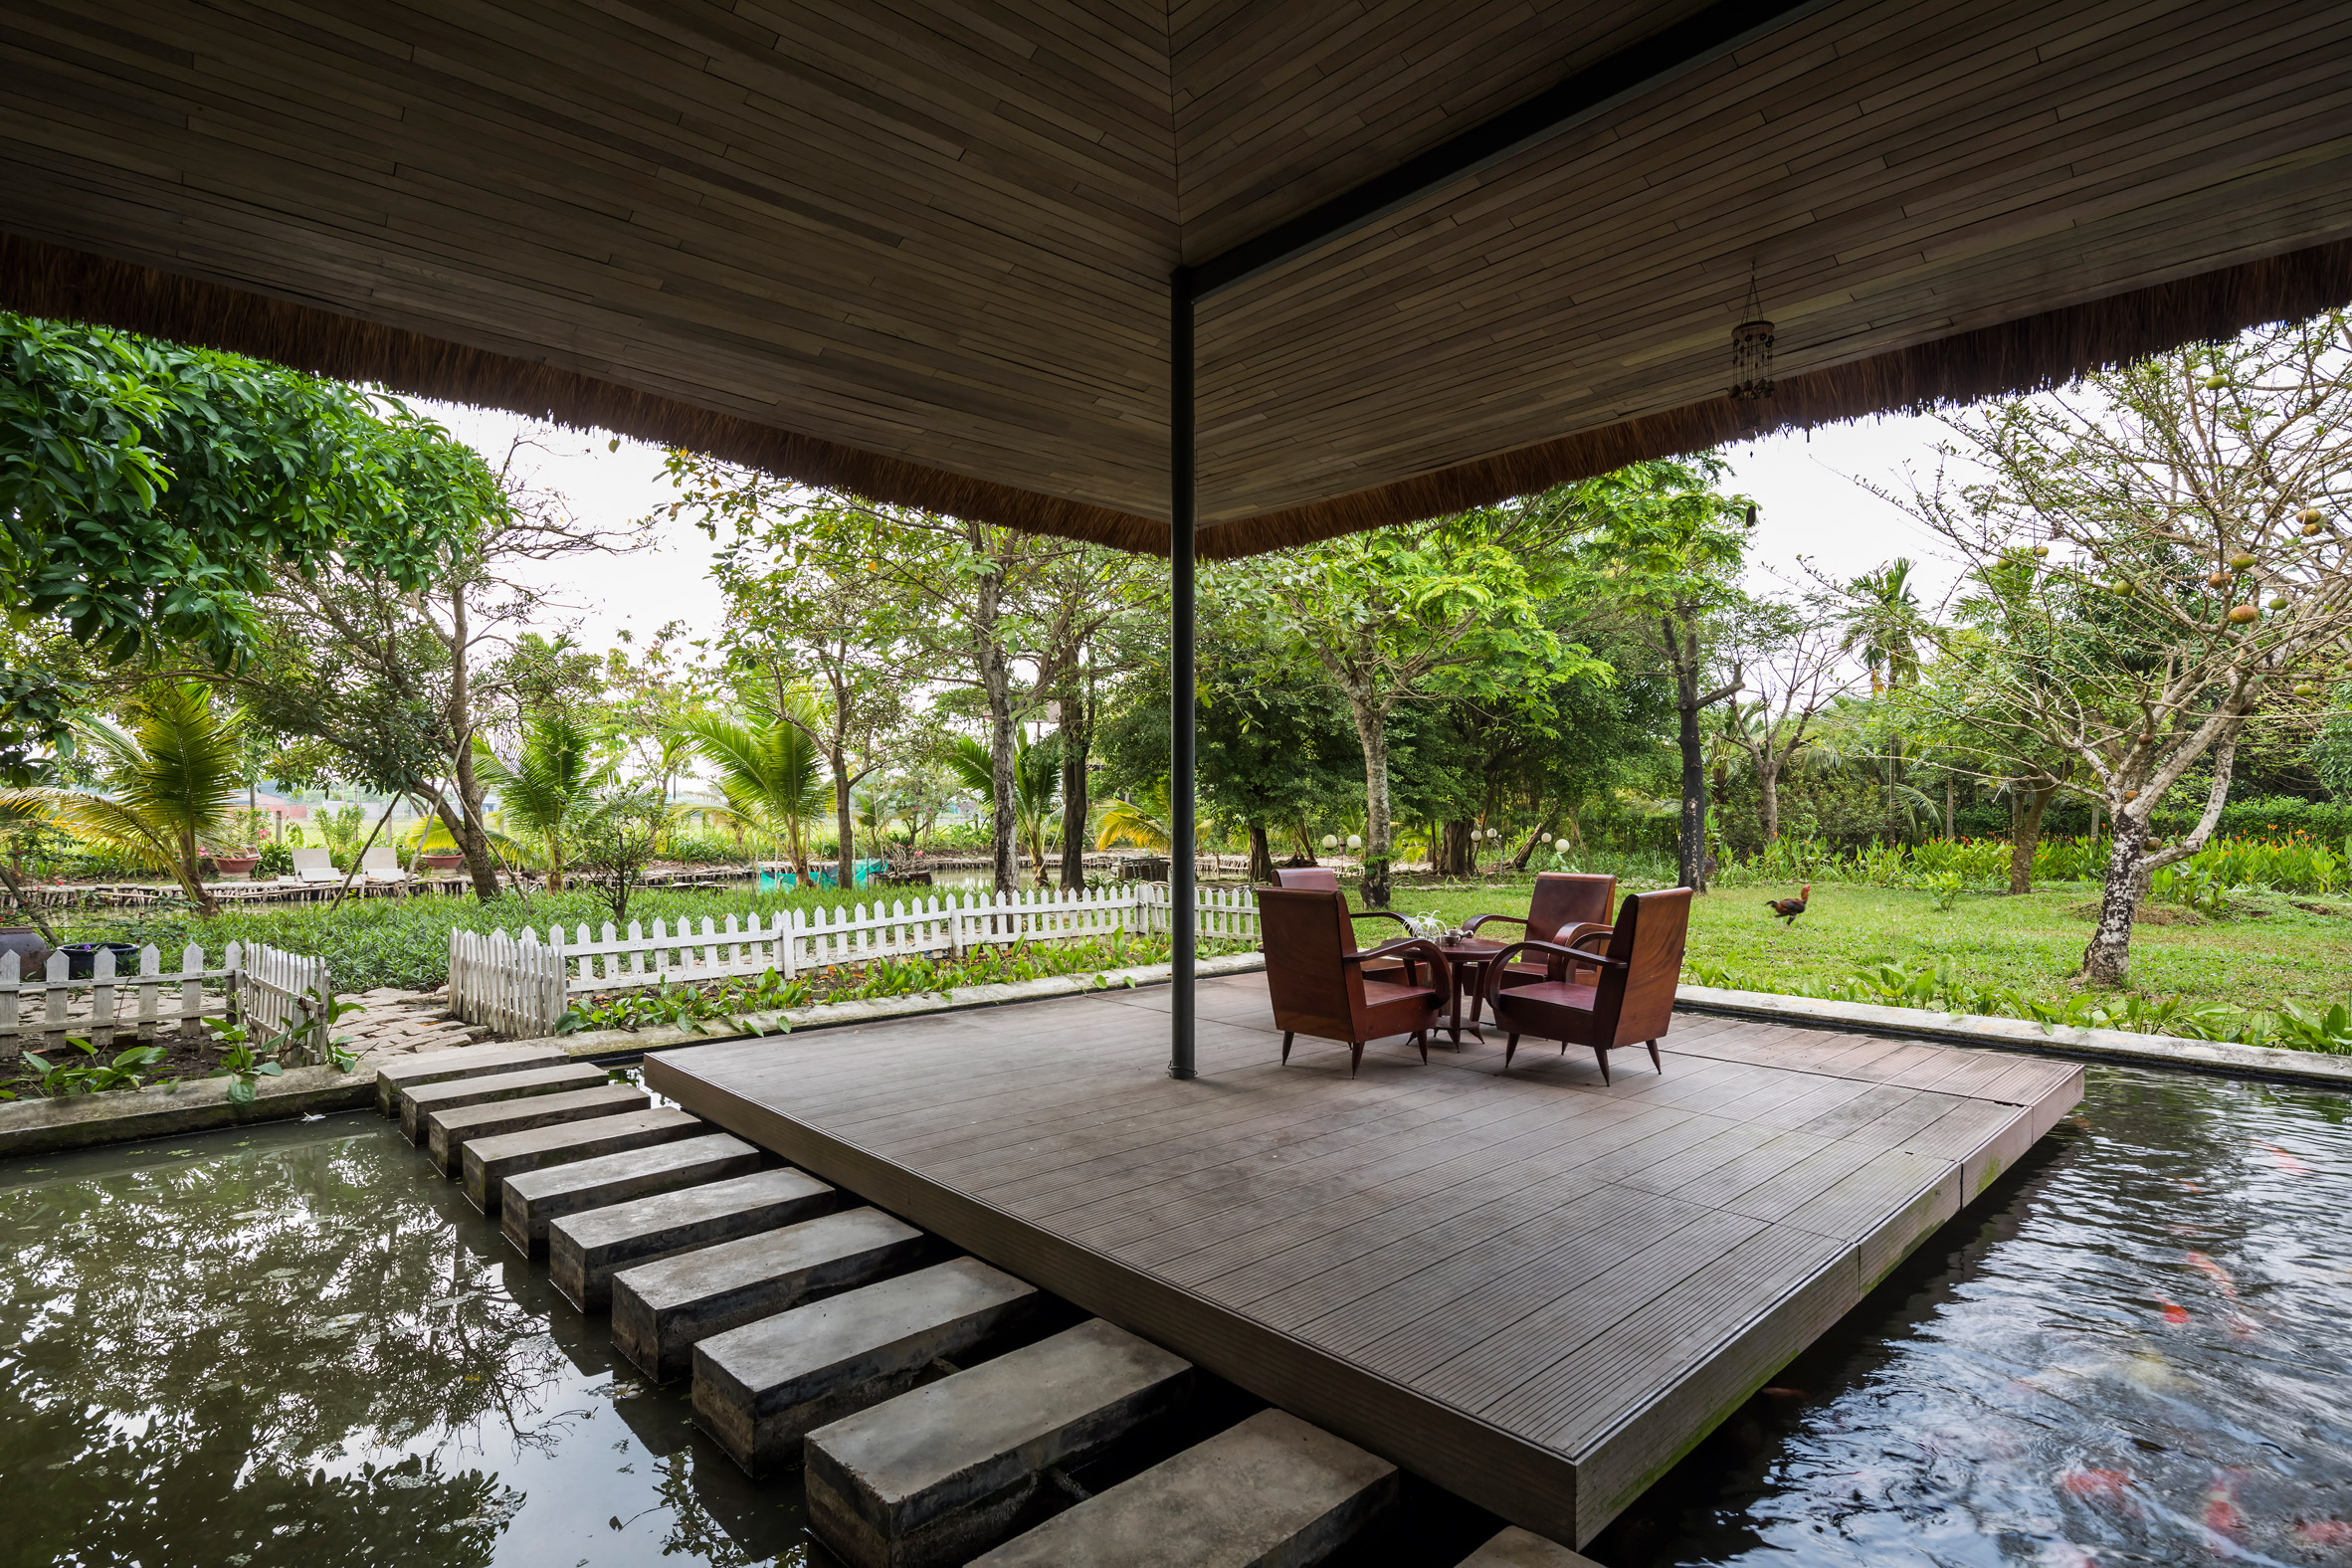 A sheltered outdoor deck